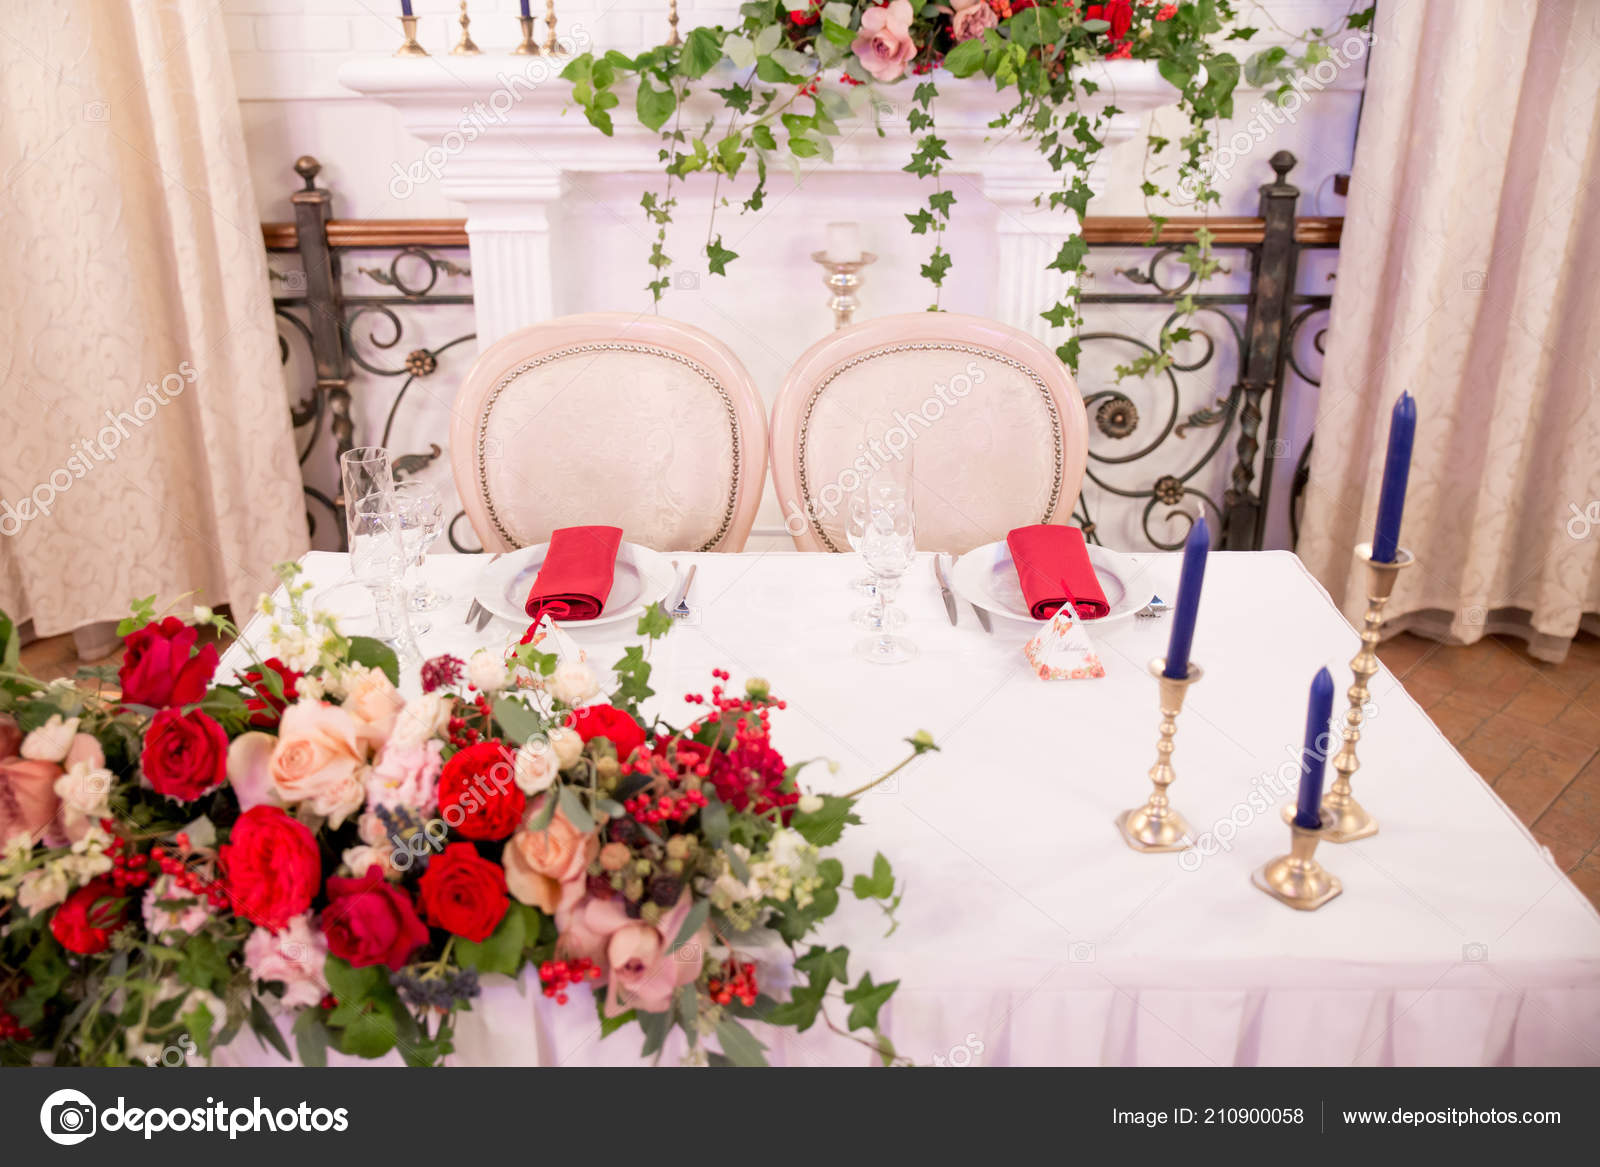 Table Decor Wedding Ceremony Table Setting Flowers Red White